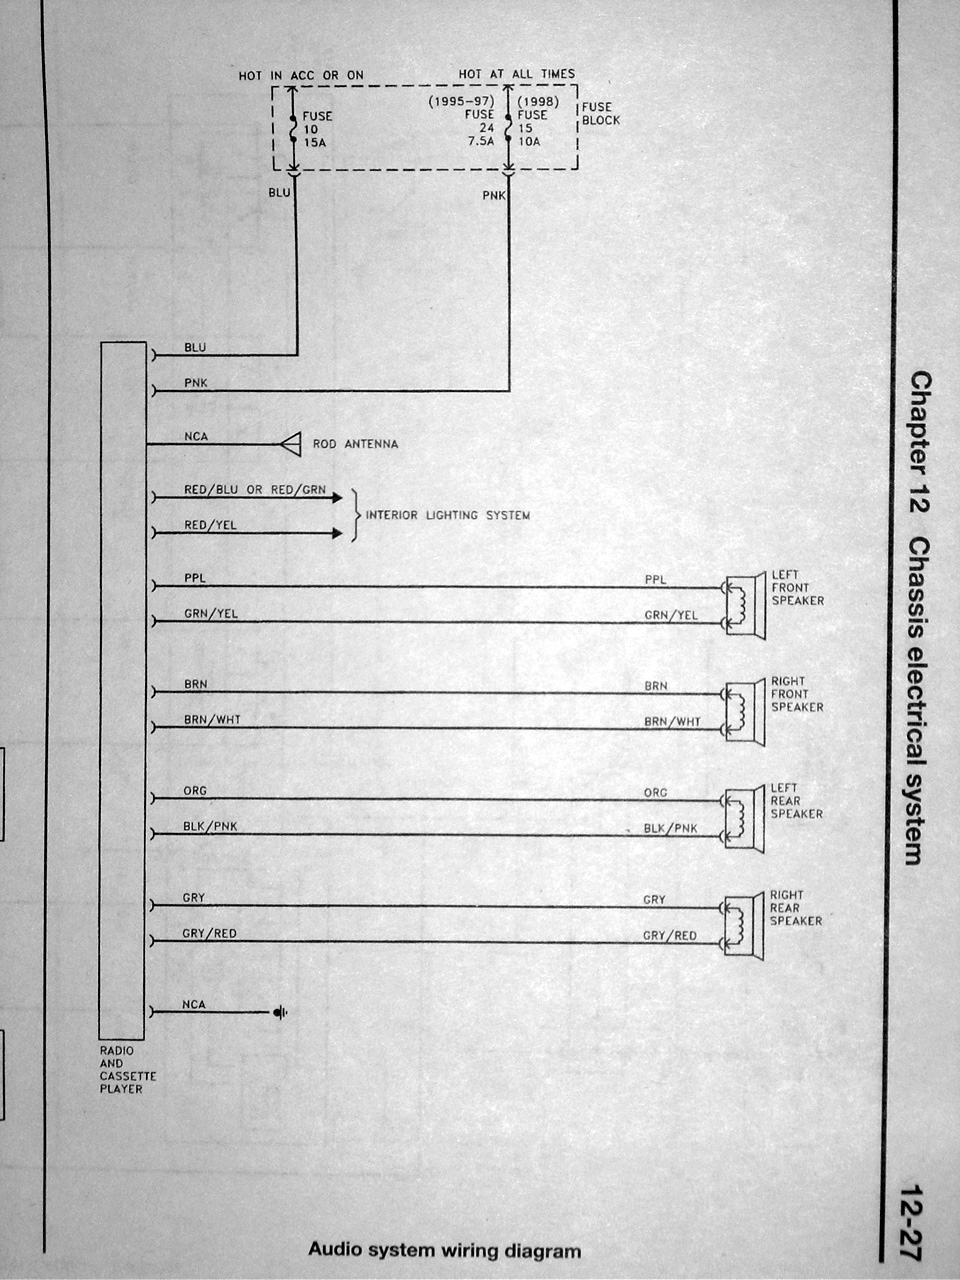 DSC01849 wiring diagram thread *useful info* nissan forum 2000 nissan altima wiring diagram at soozxer.org